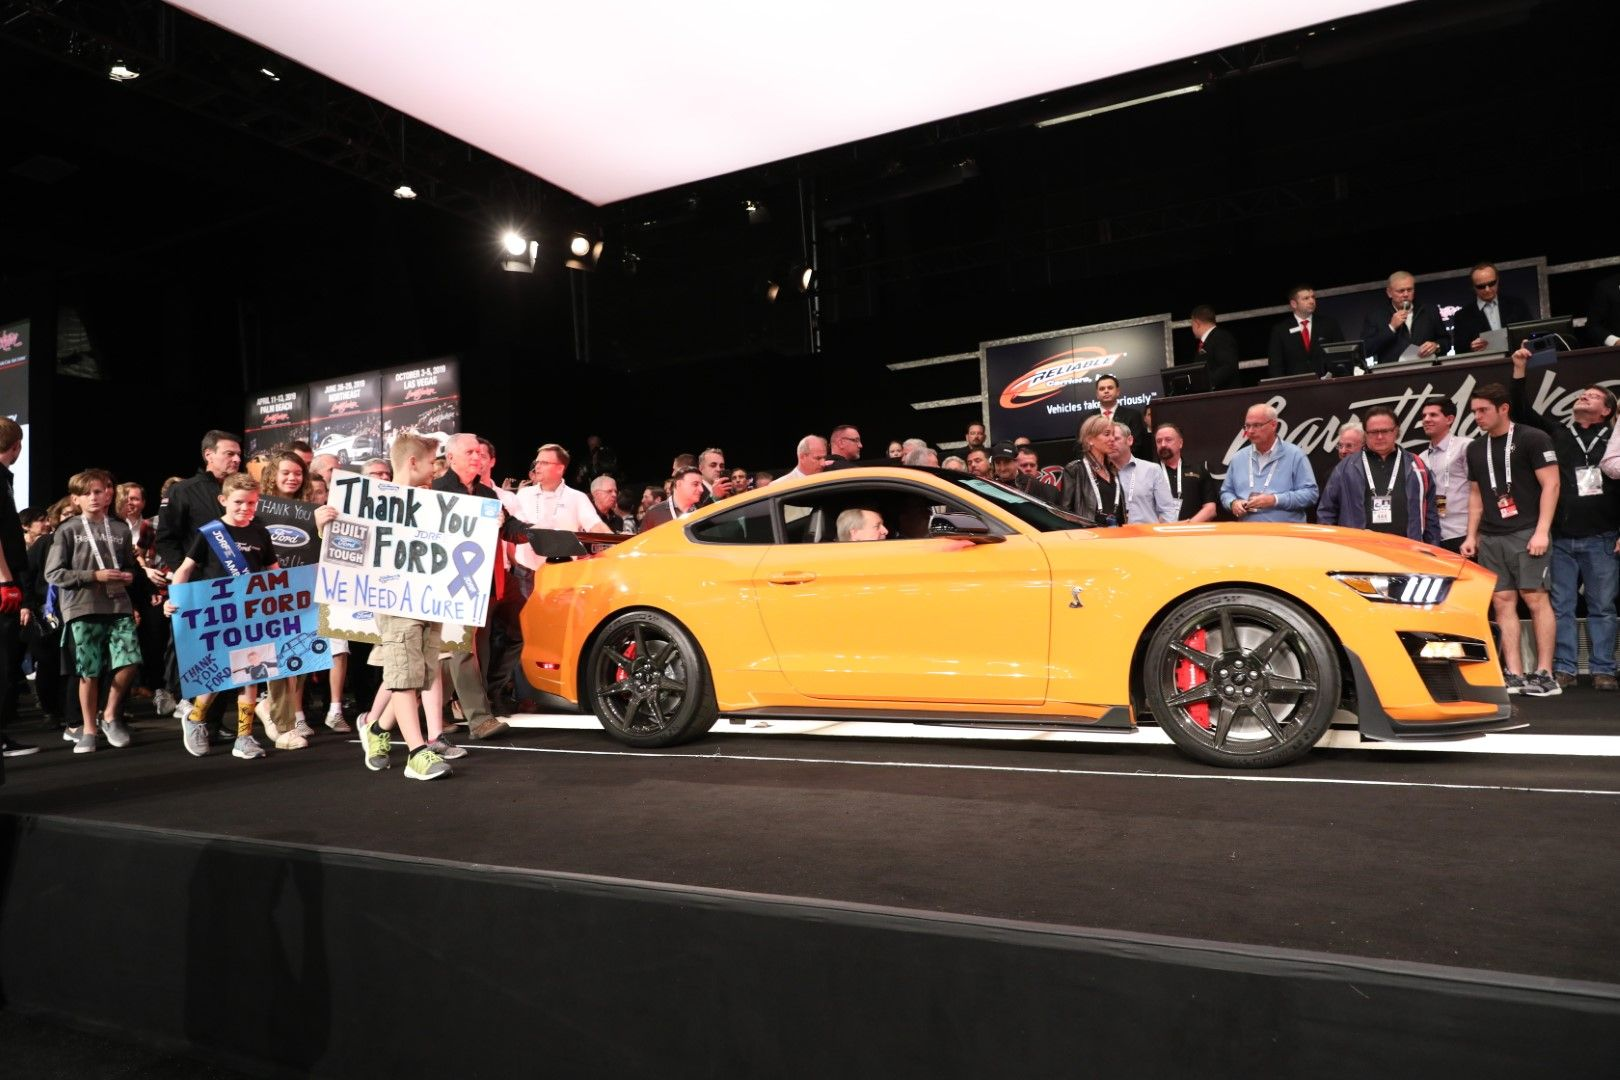 1st 2020 Mustang Shelby Gt500 Auctioned For 1 1 Million Ford Mustang Shelby Gt500 Mustang Shelby Shelby Gt500